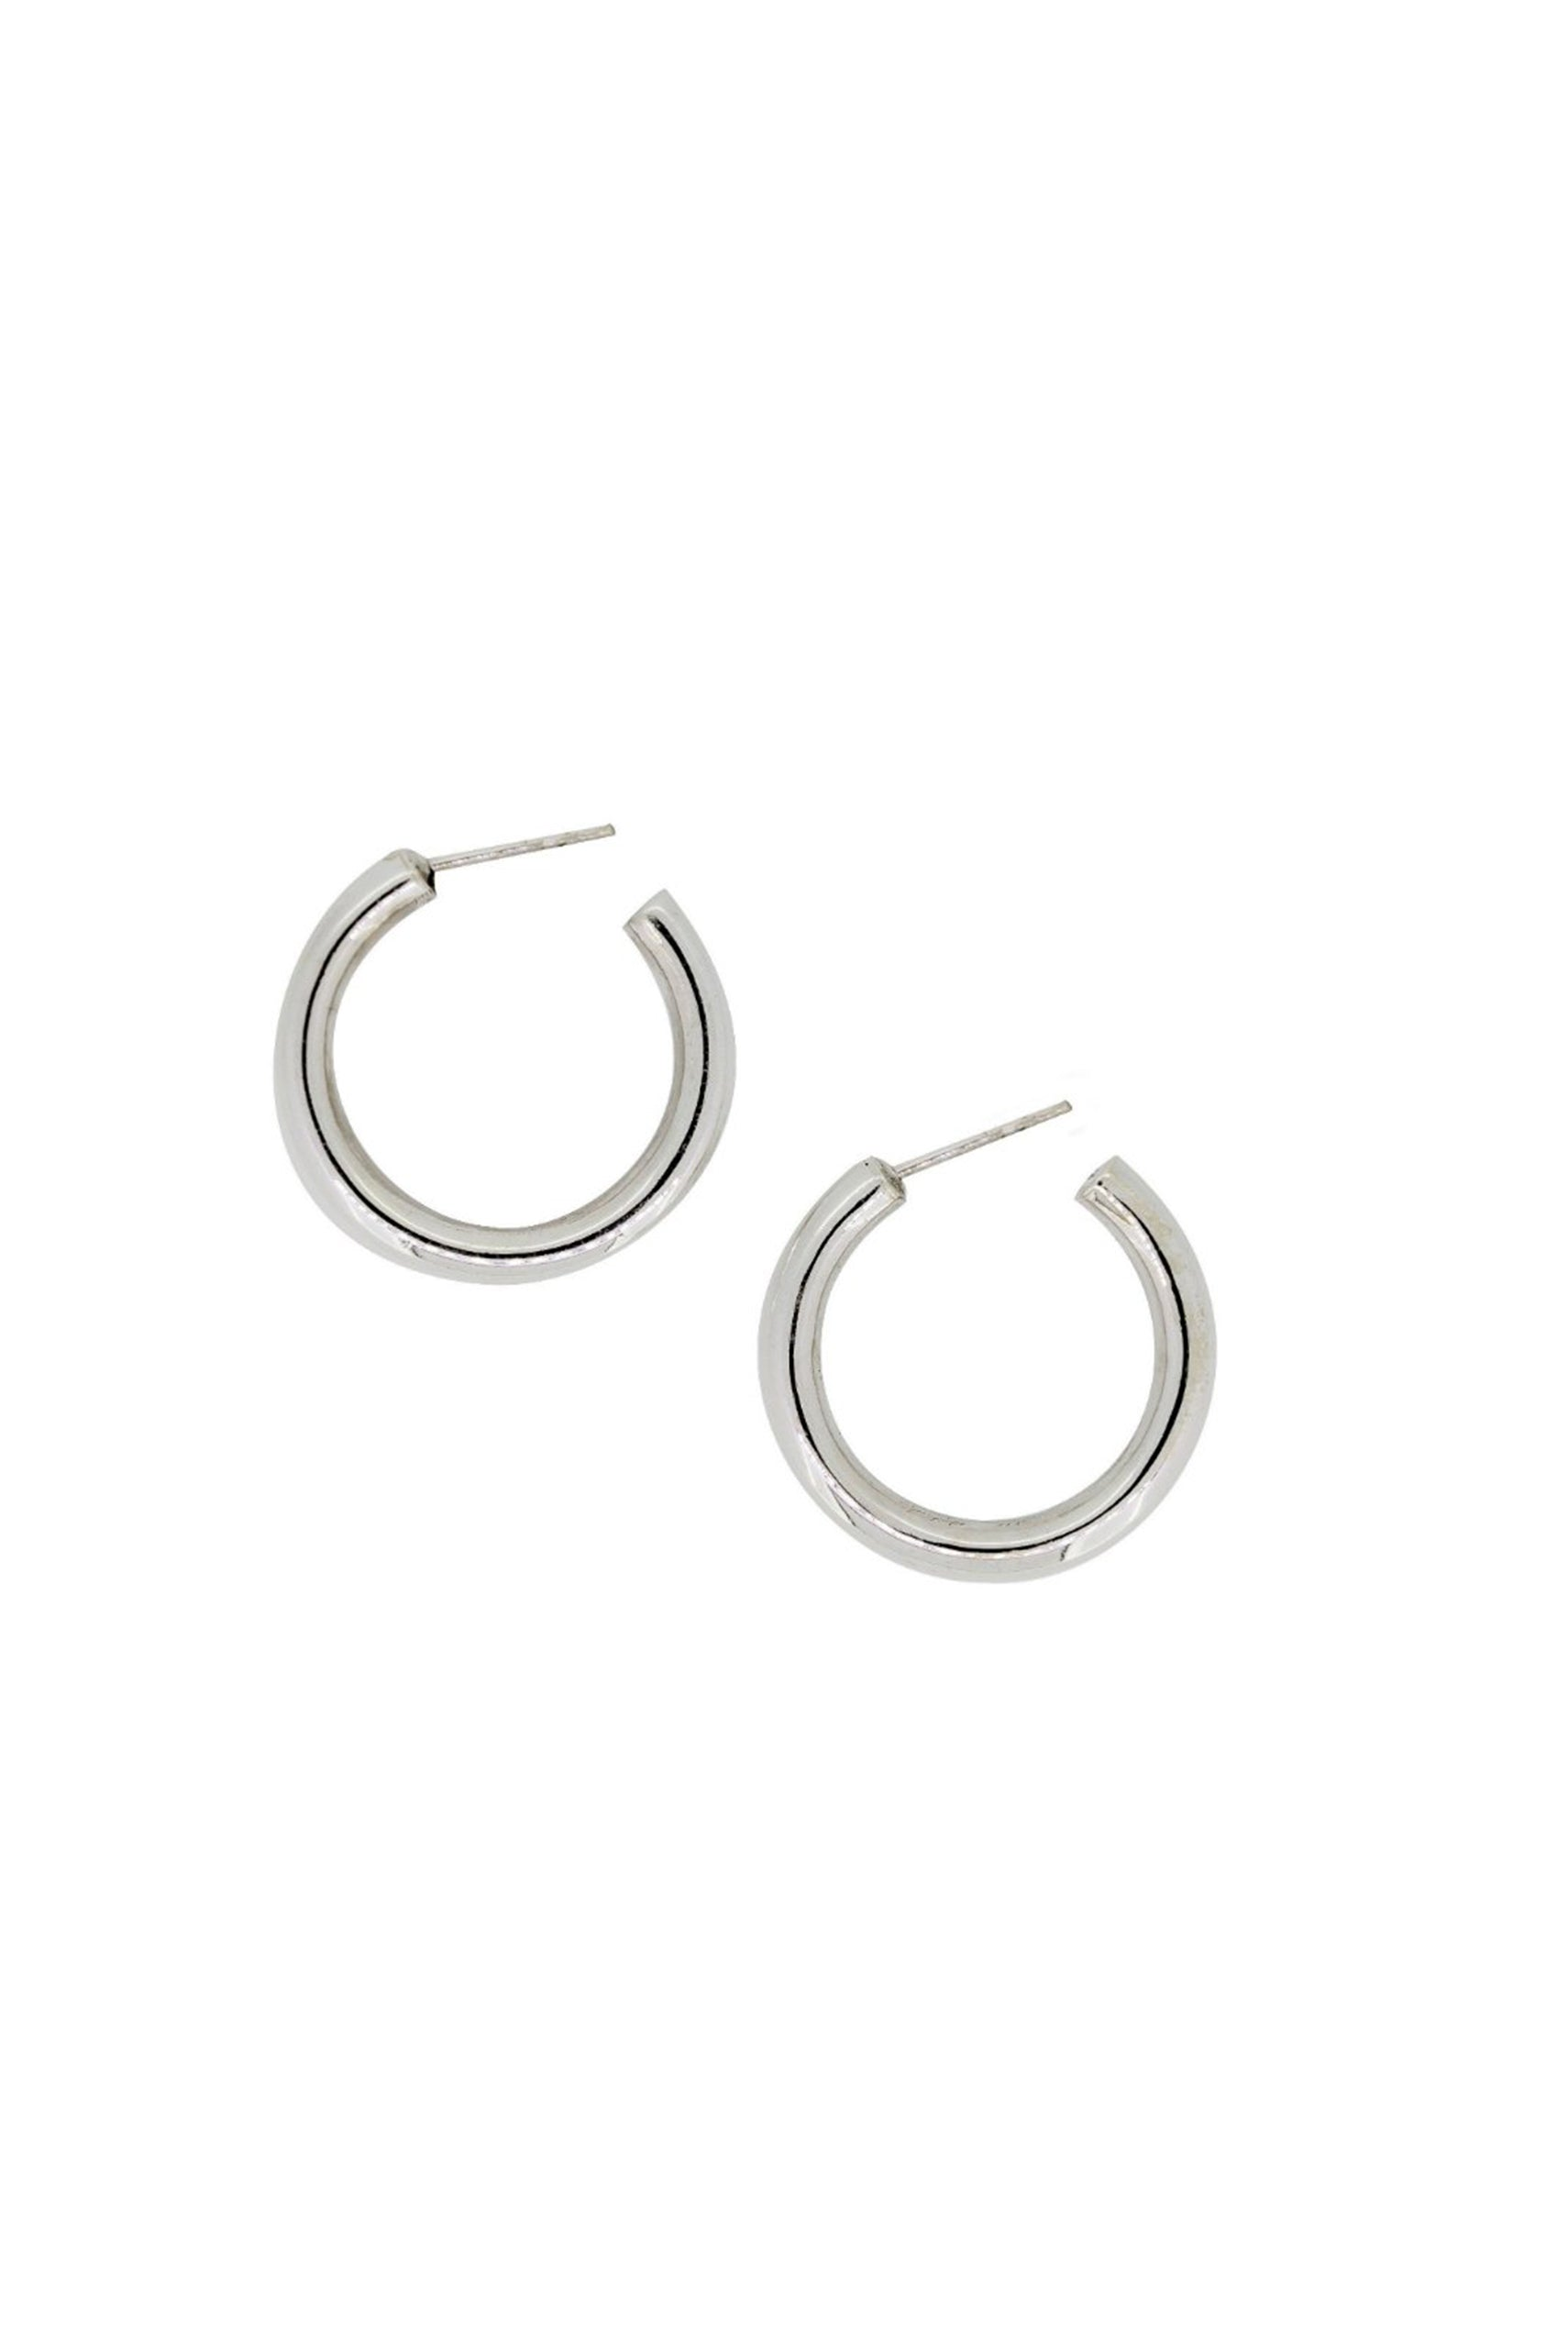 Holly Ryan Silver Mini Tube Earrings